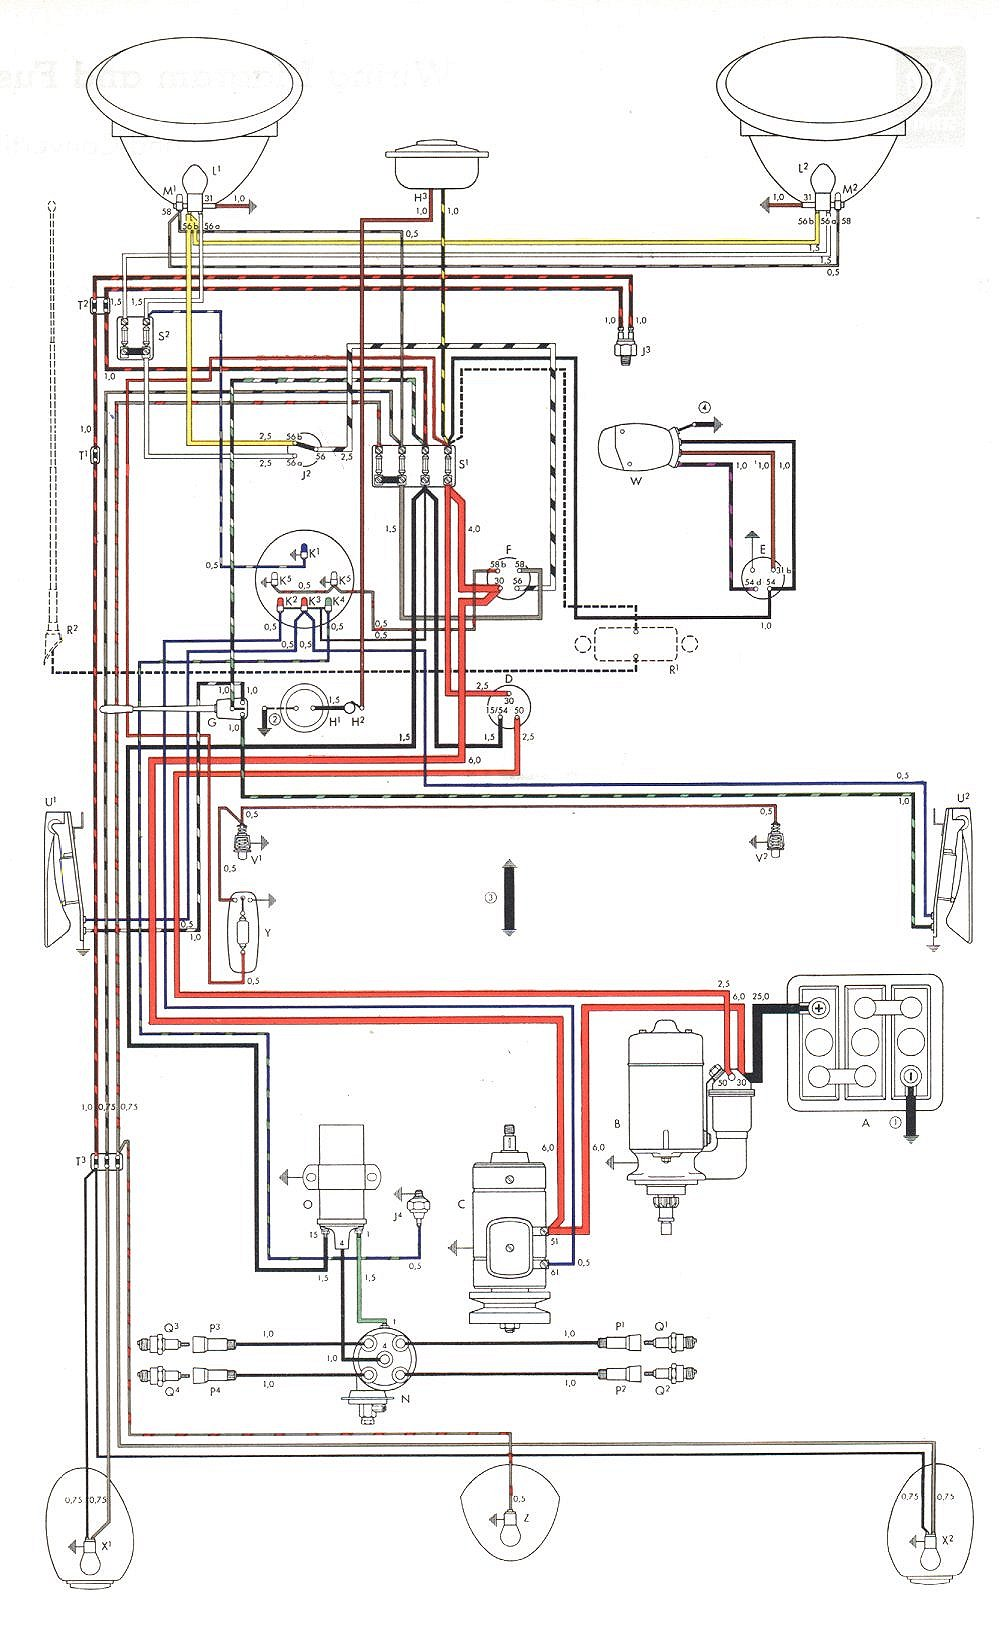 Vw Polo 1 4 Tdi Wiring Diagram | Wiring Schematic Diagram ... Vw Polo Fuse Box Layout on vw rabbit fuse box, vw polo tail light, vw jetta fuse box diagram, vw polo engine, vw bus fuse box, vw polo tie rod, vw tiguan fuse box, vw golf fuse box, vw polo steering column, vw beetle fuse box diagram, vw passat fuse box, vw polo horn, vw eos fuse box, vw touareg fuse box,